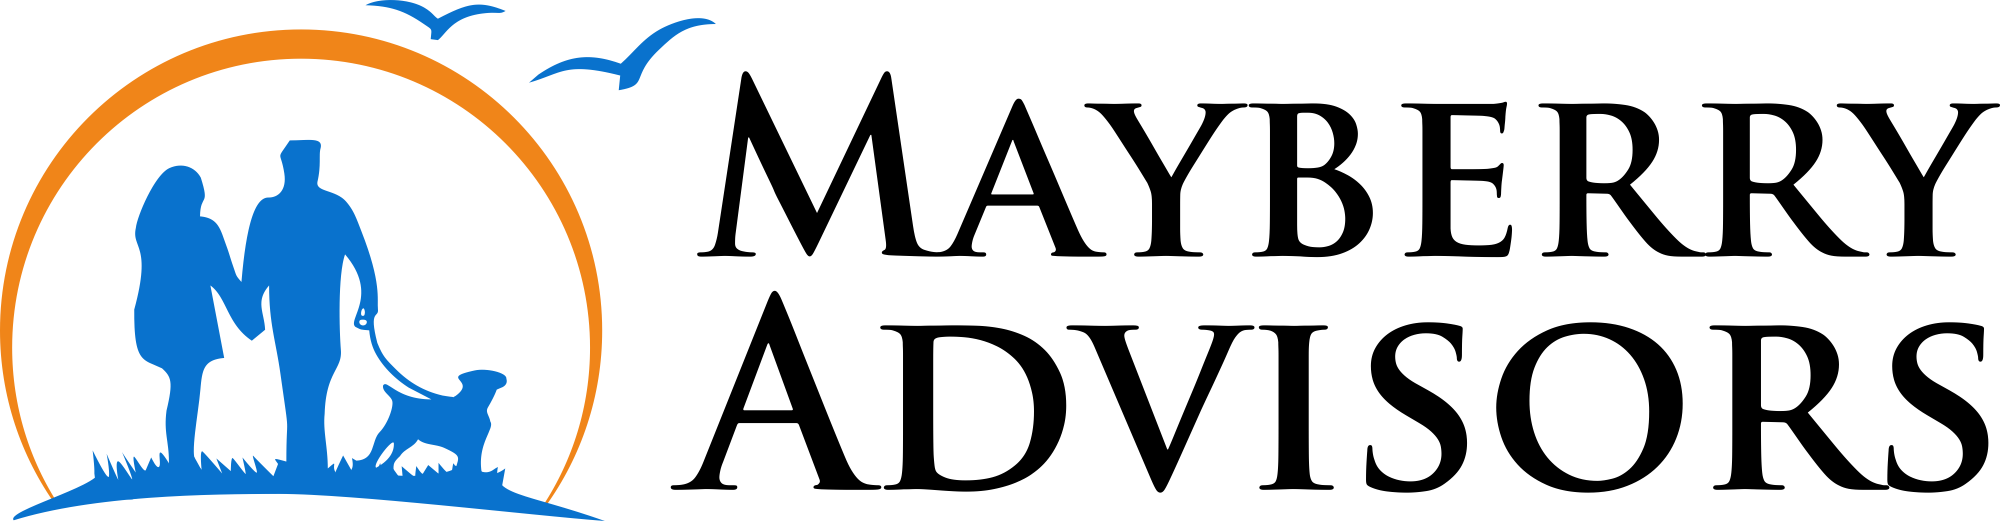 Mayberry Advisors corporate logo.